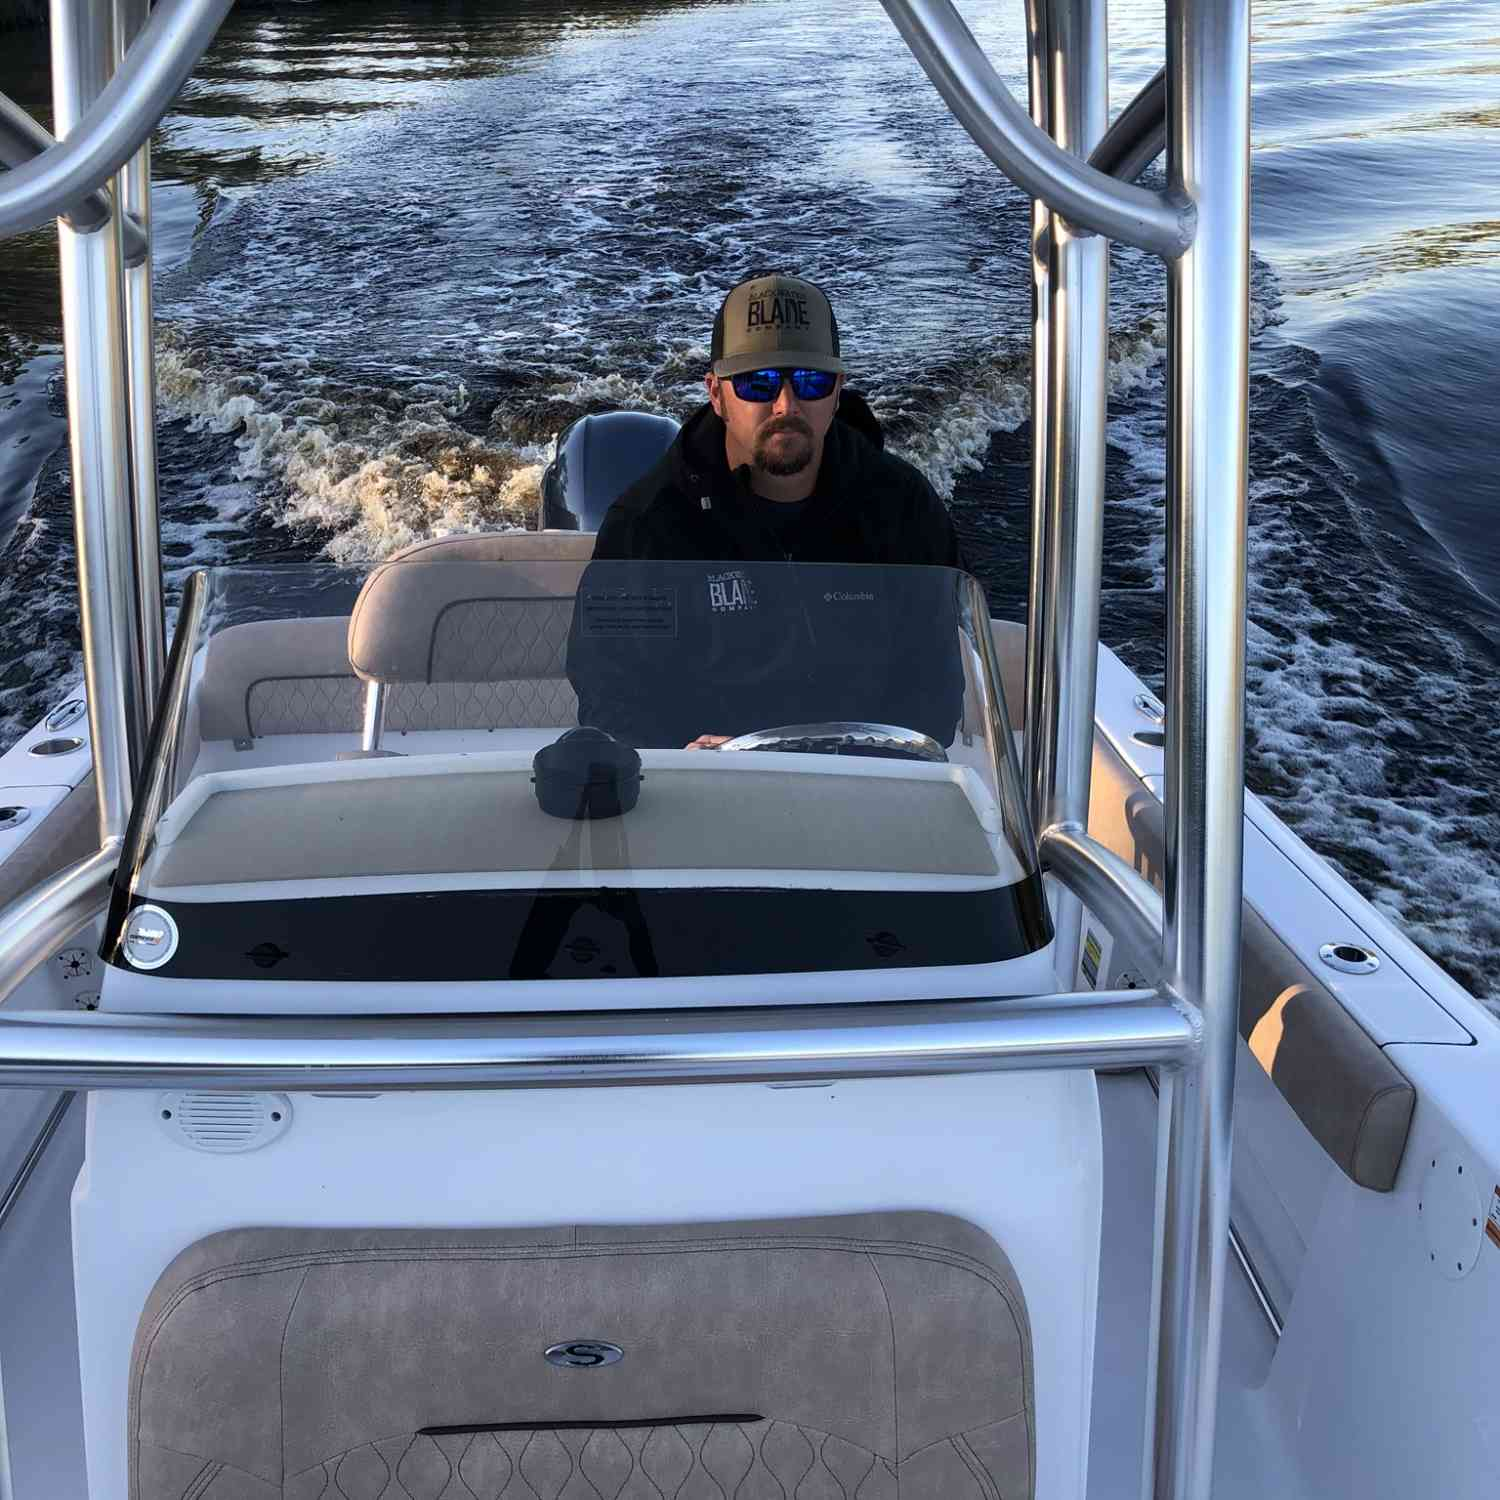 Title: River cruising - On board their Sportsman Heritage 211 Center Console - Location: Conway, South Carolina. Participating in the Photo Contest #SportsmanMay2020